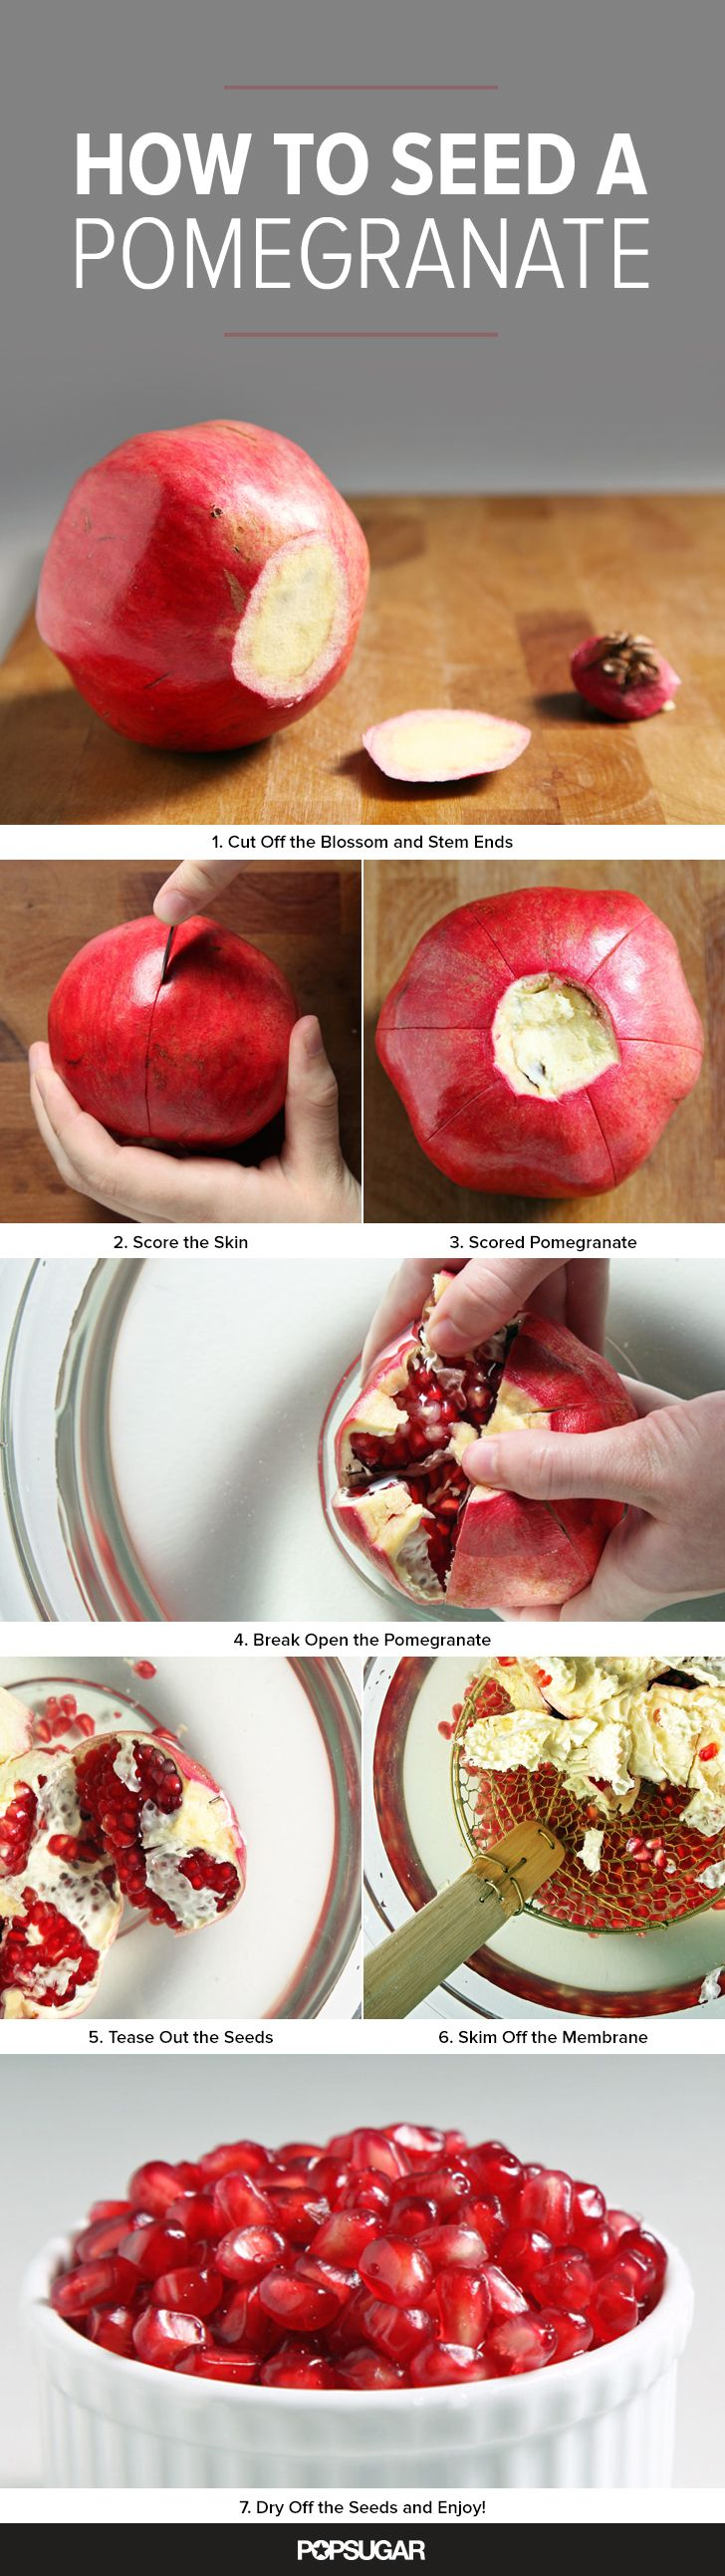 How to Seed a Pomegranate Without Making a Huge Mess